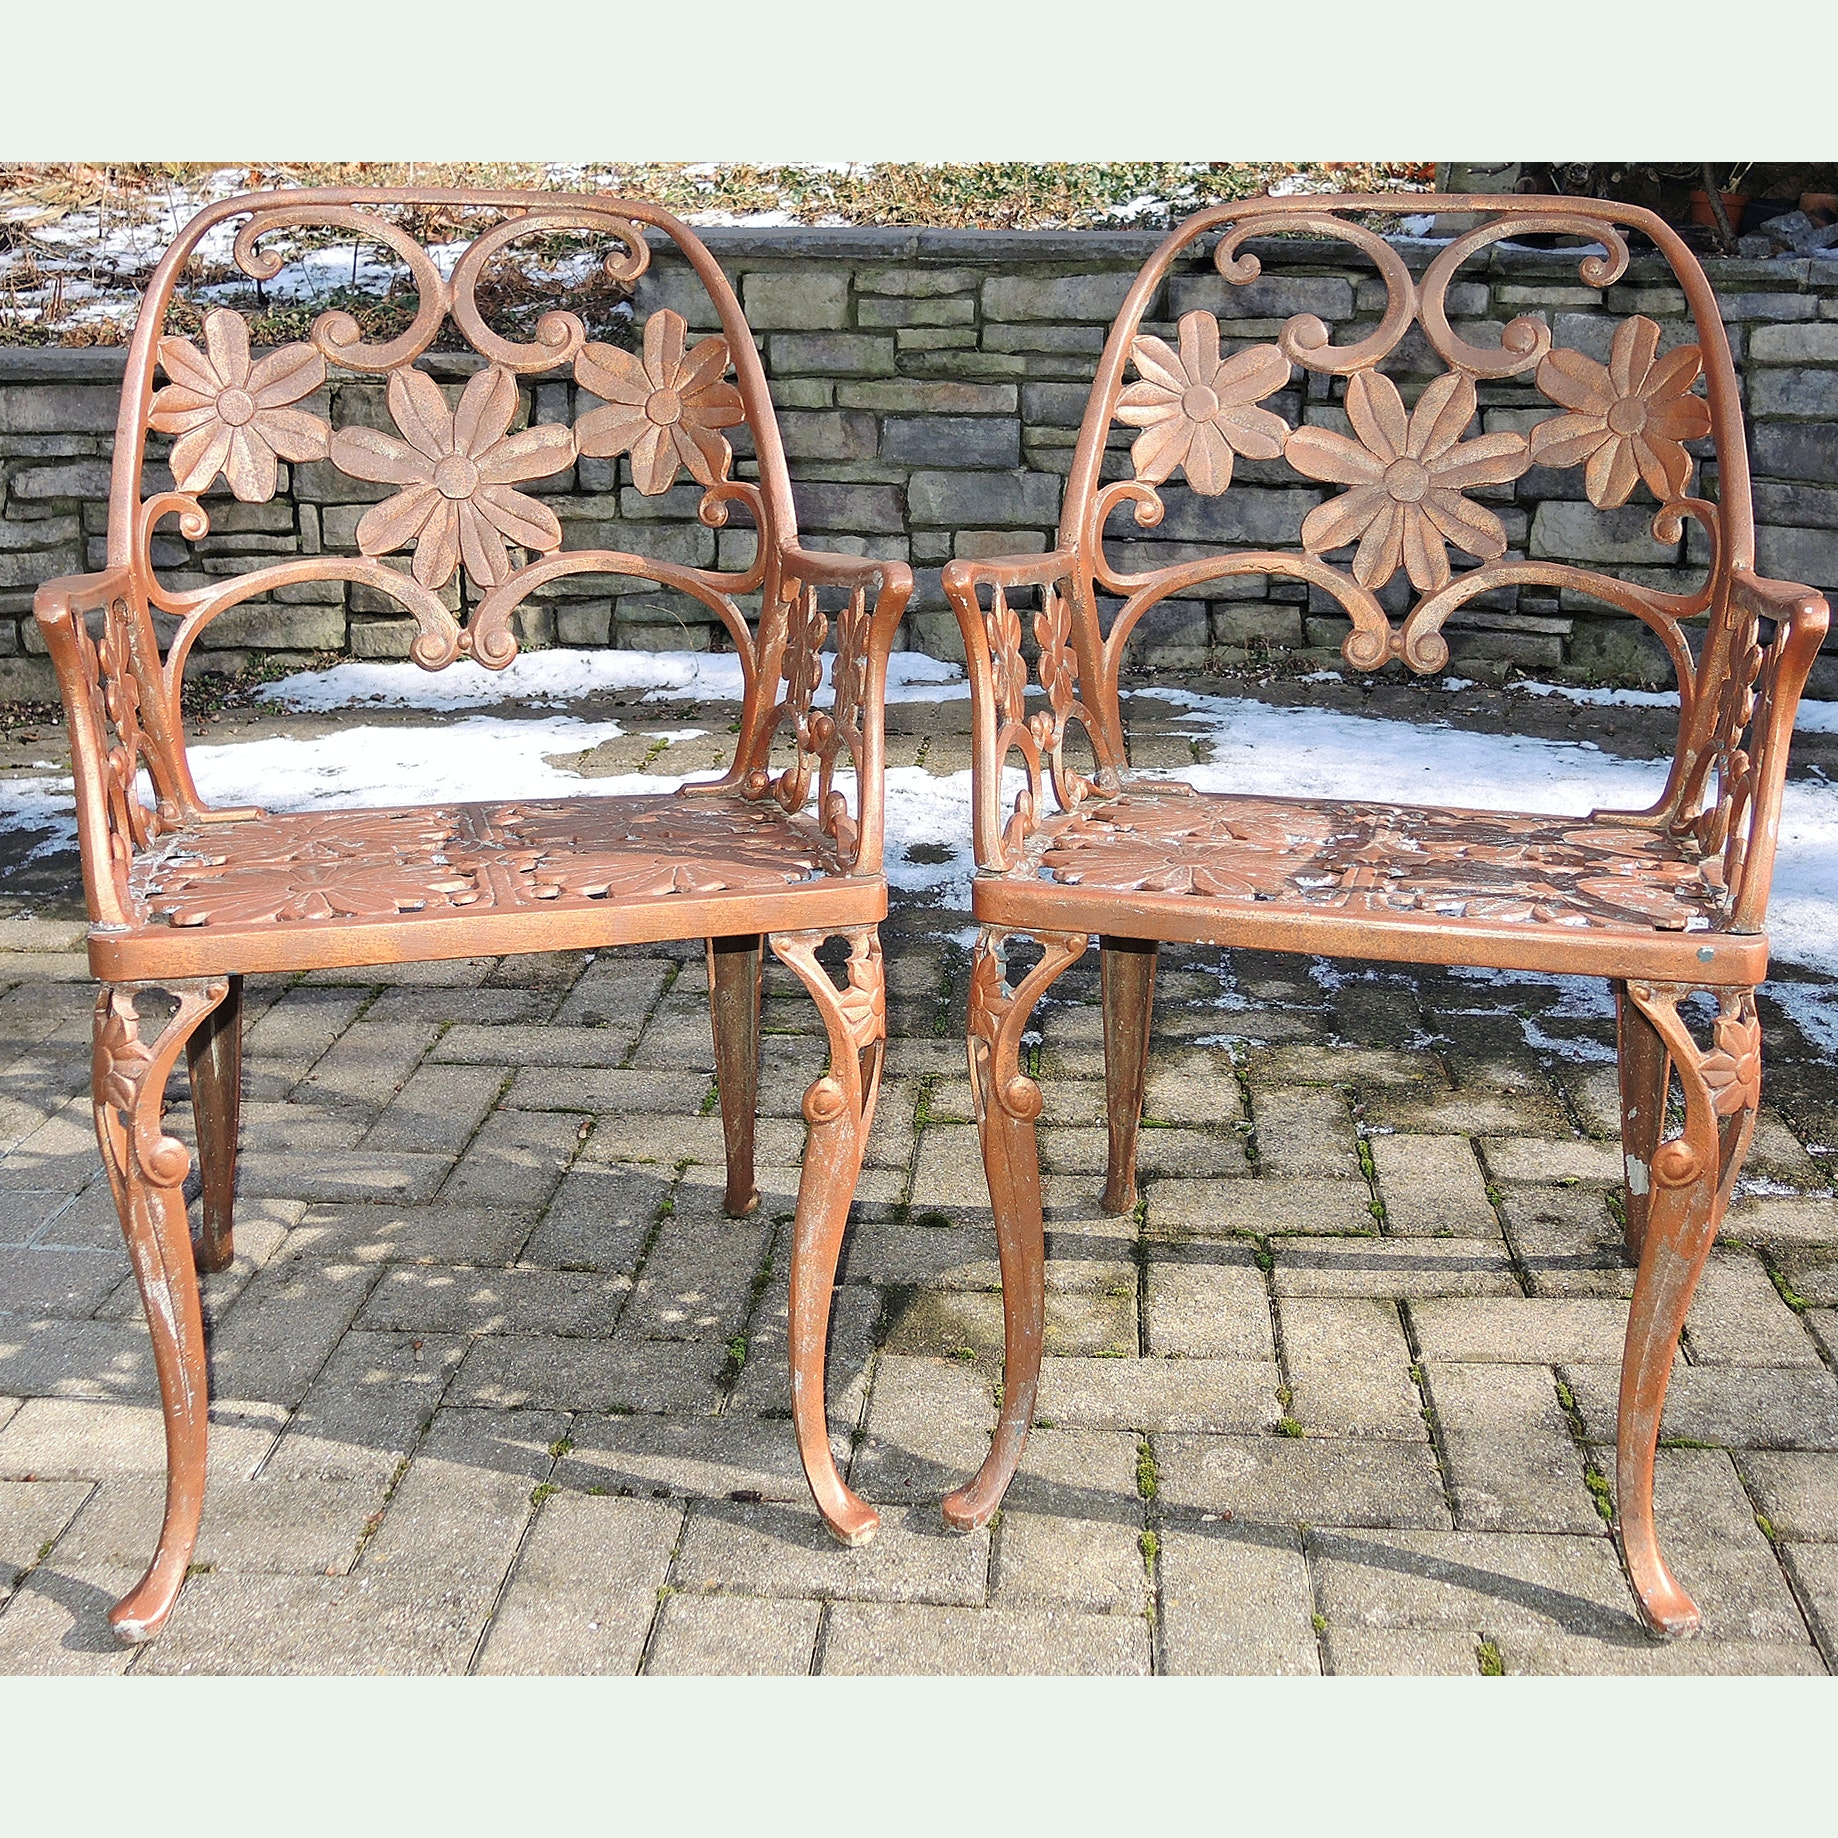 Die Cast Metal Garden Chairs